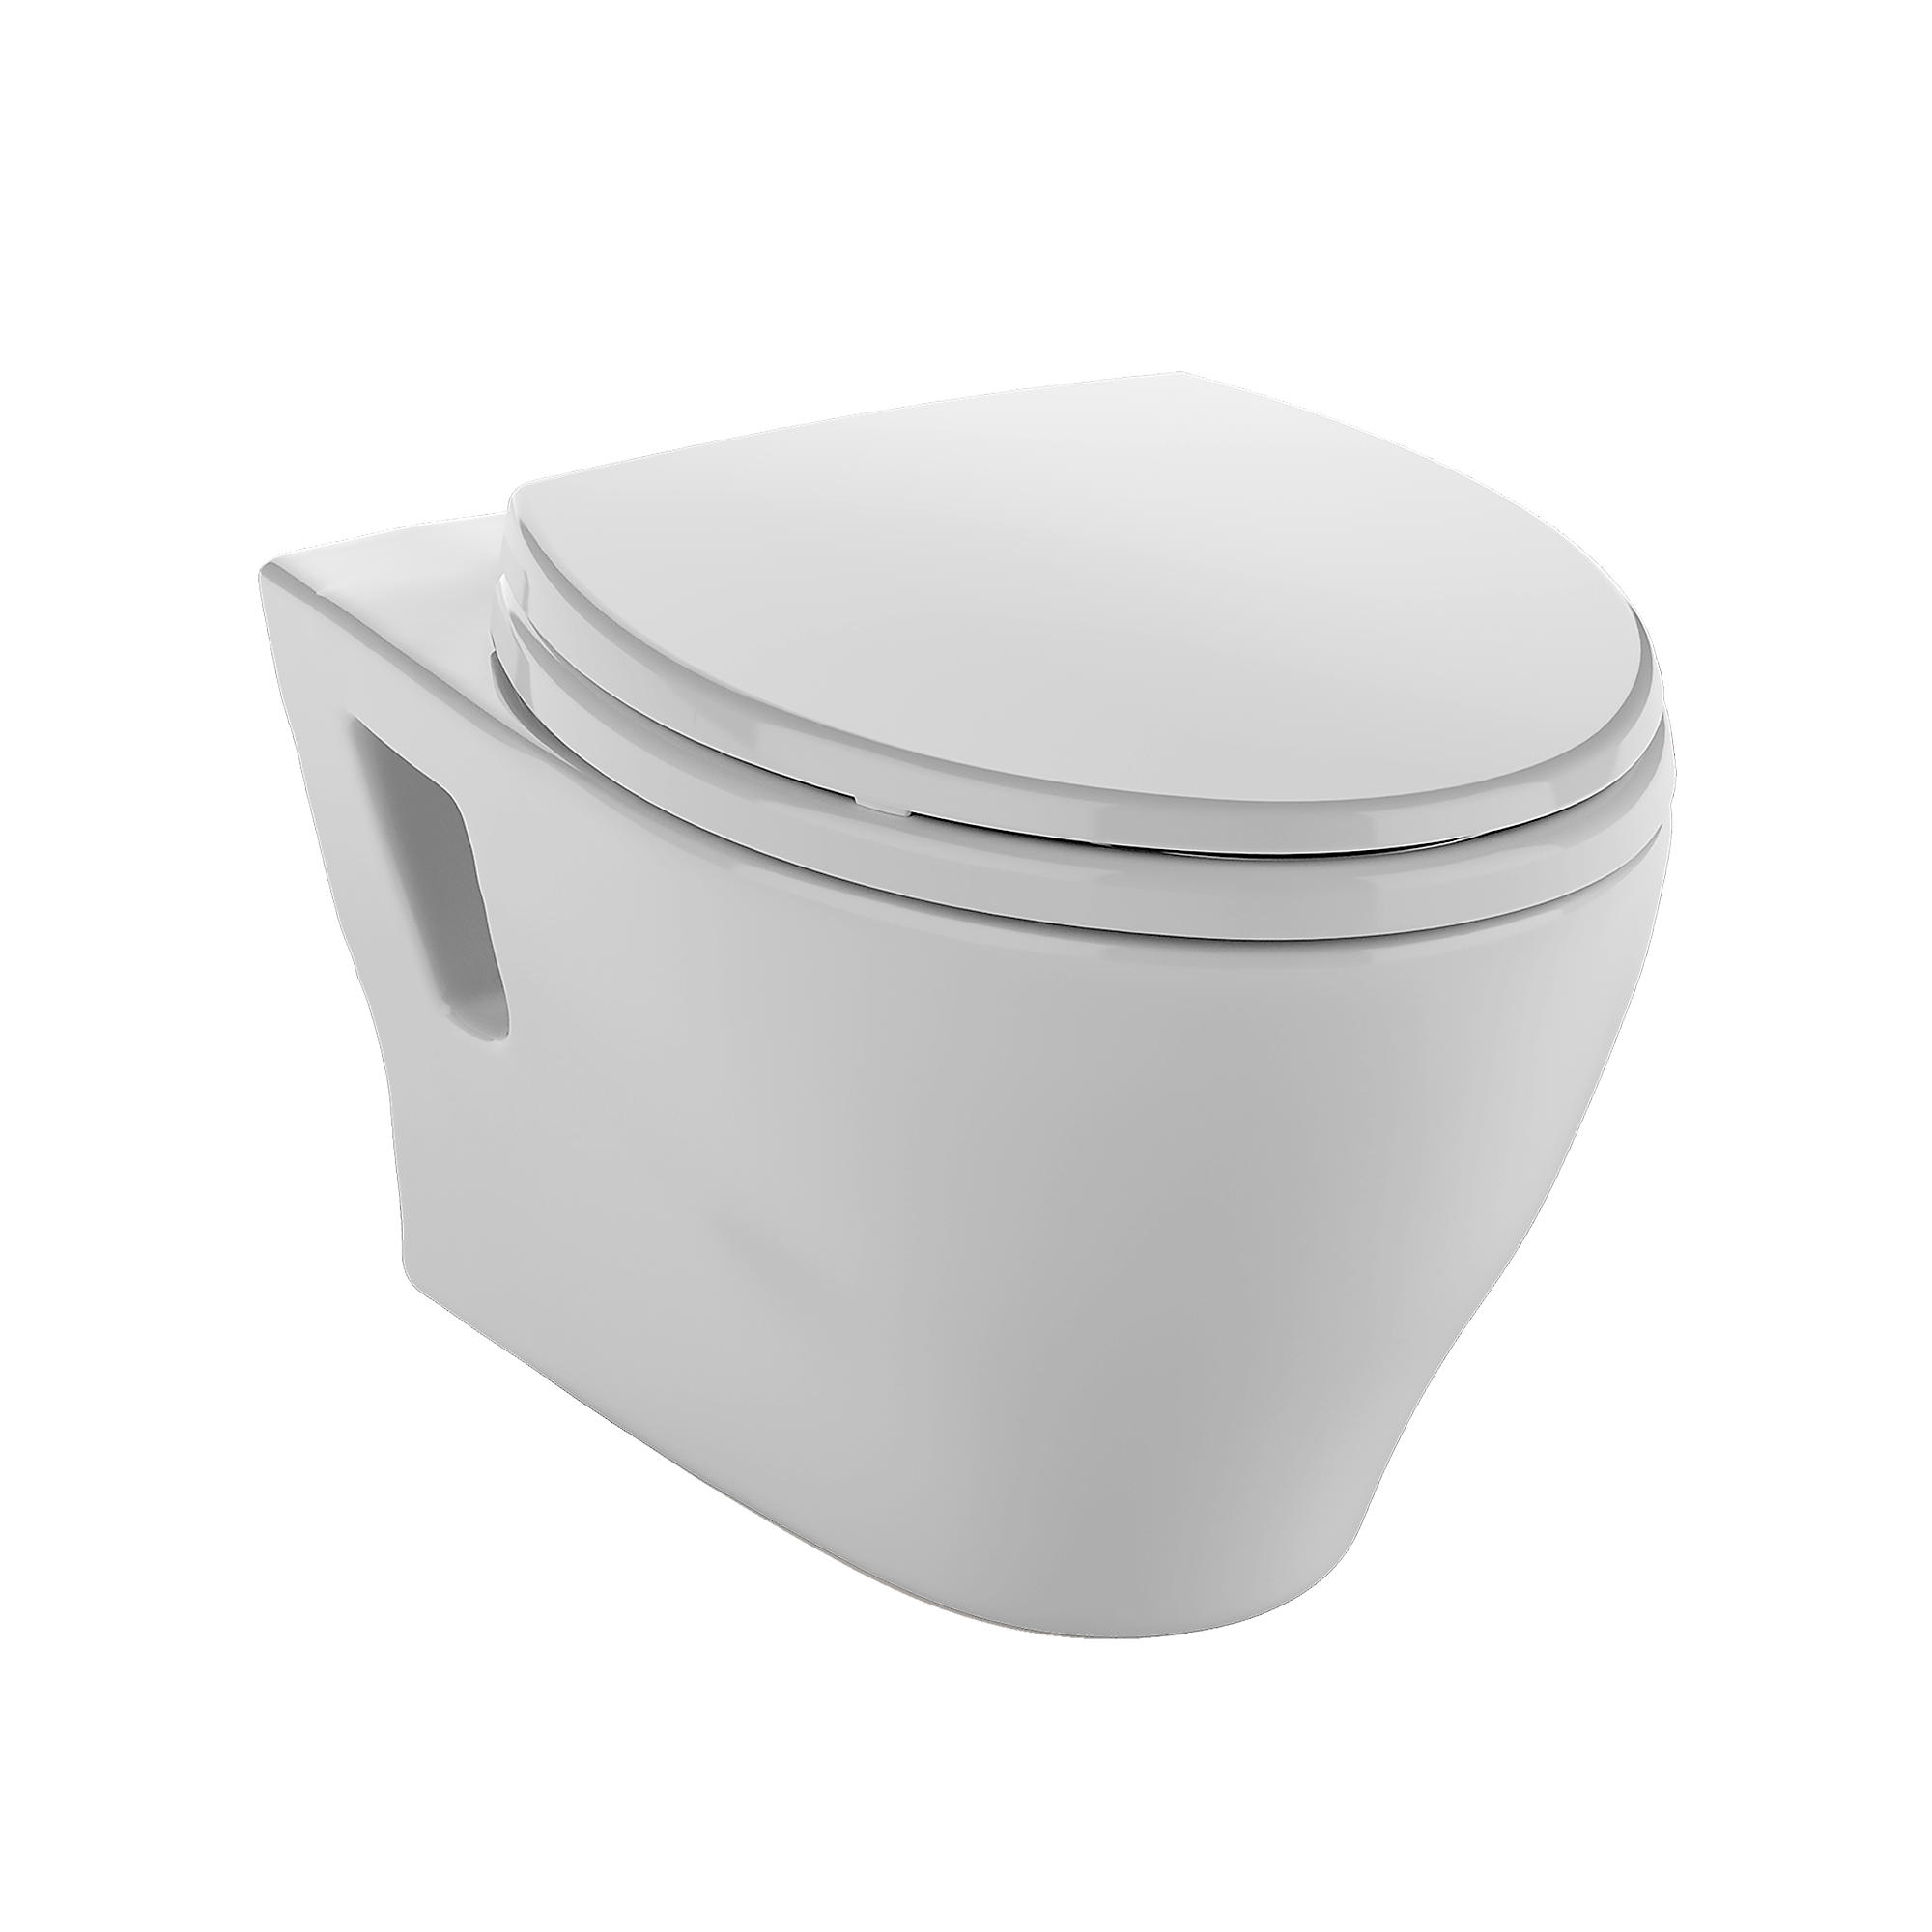 Ct418f 01 aquia  wall hung dual flush toilet  1 6 gpf   0 9 gpf  elongated bowl 0